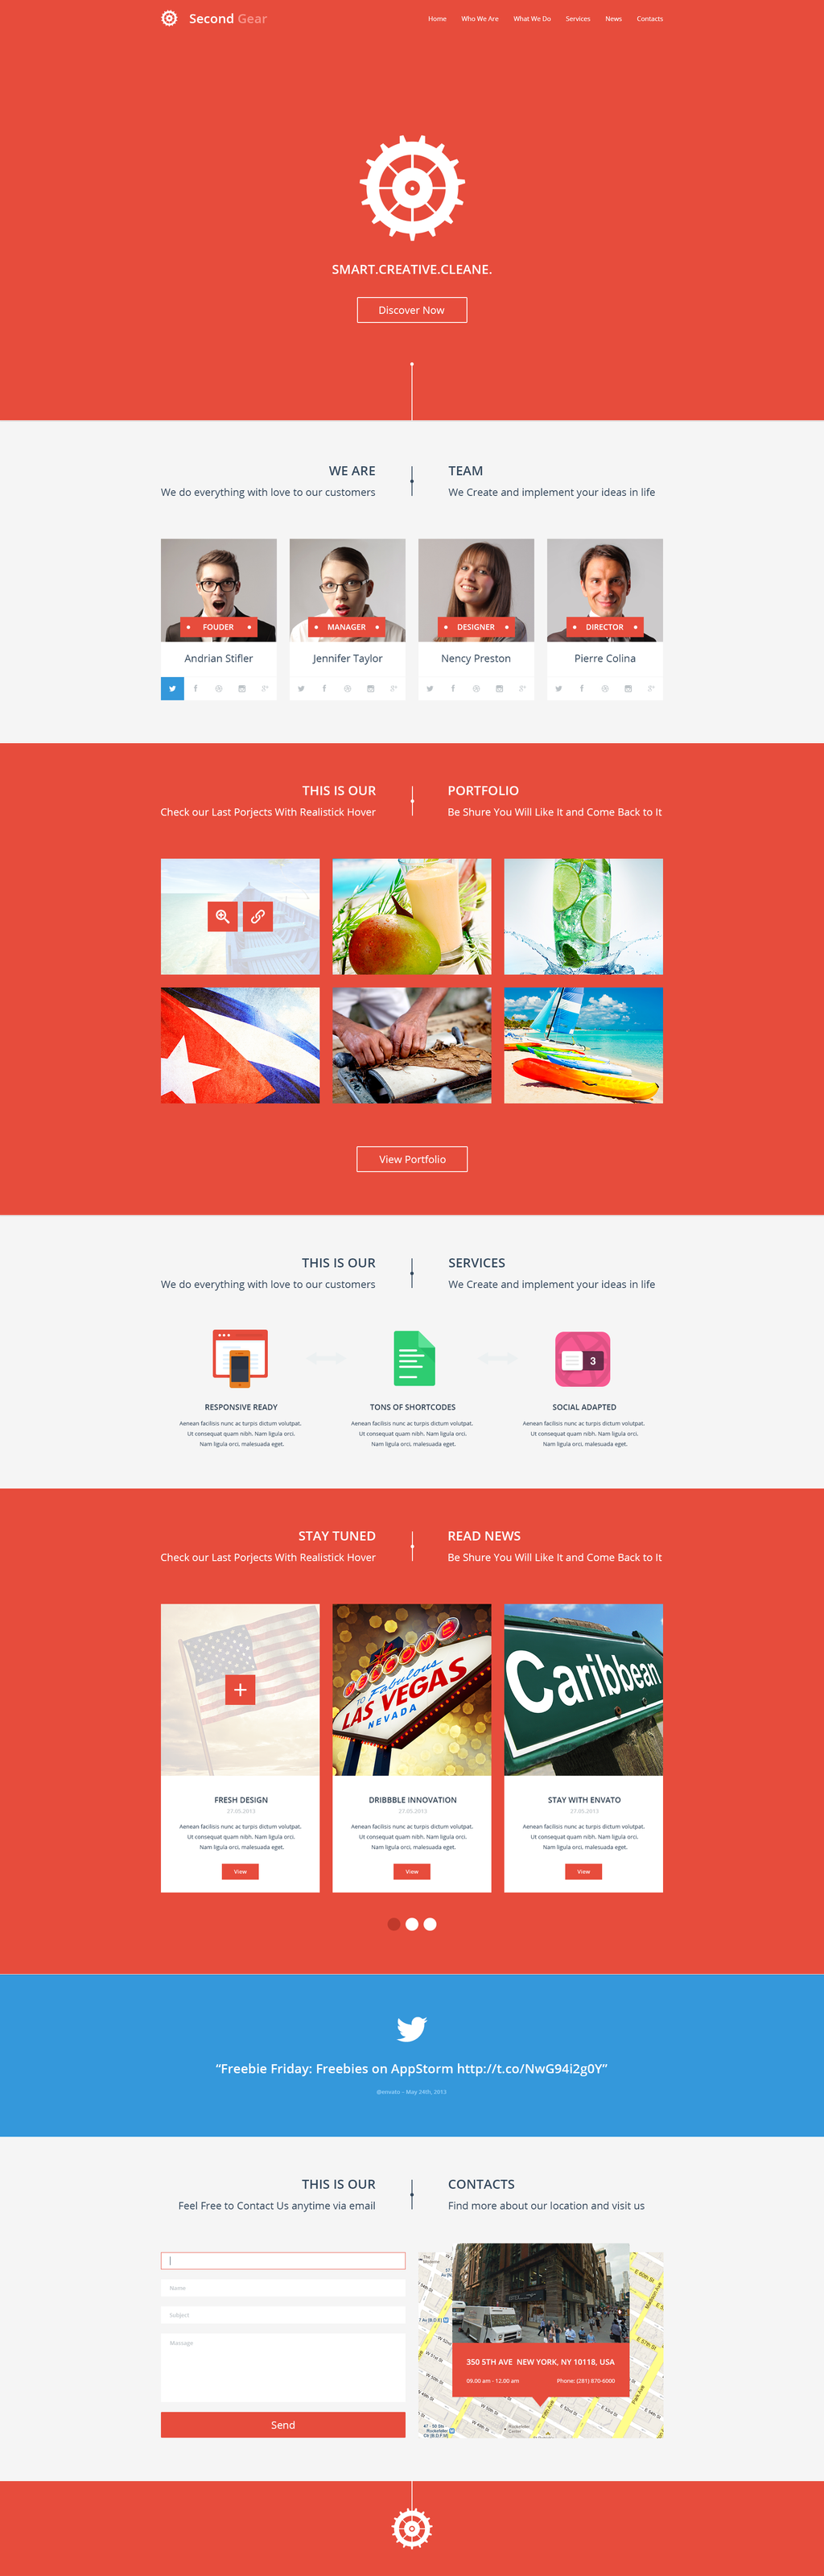 Second Gear - One Page Portfolio PSD Template by DarkStaLkeRR